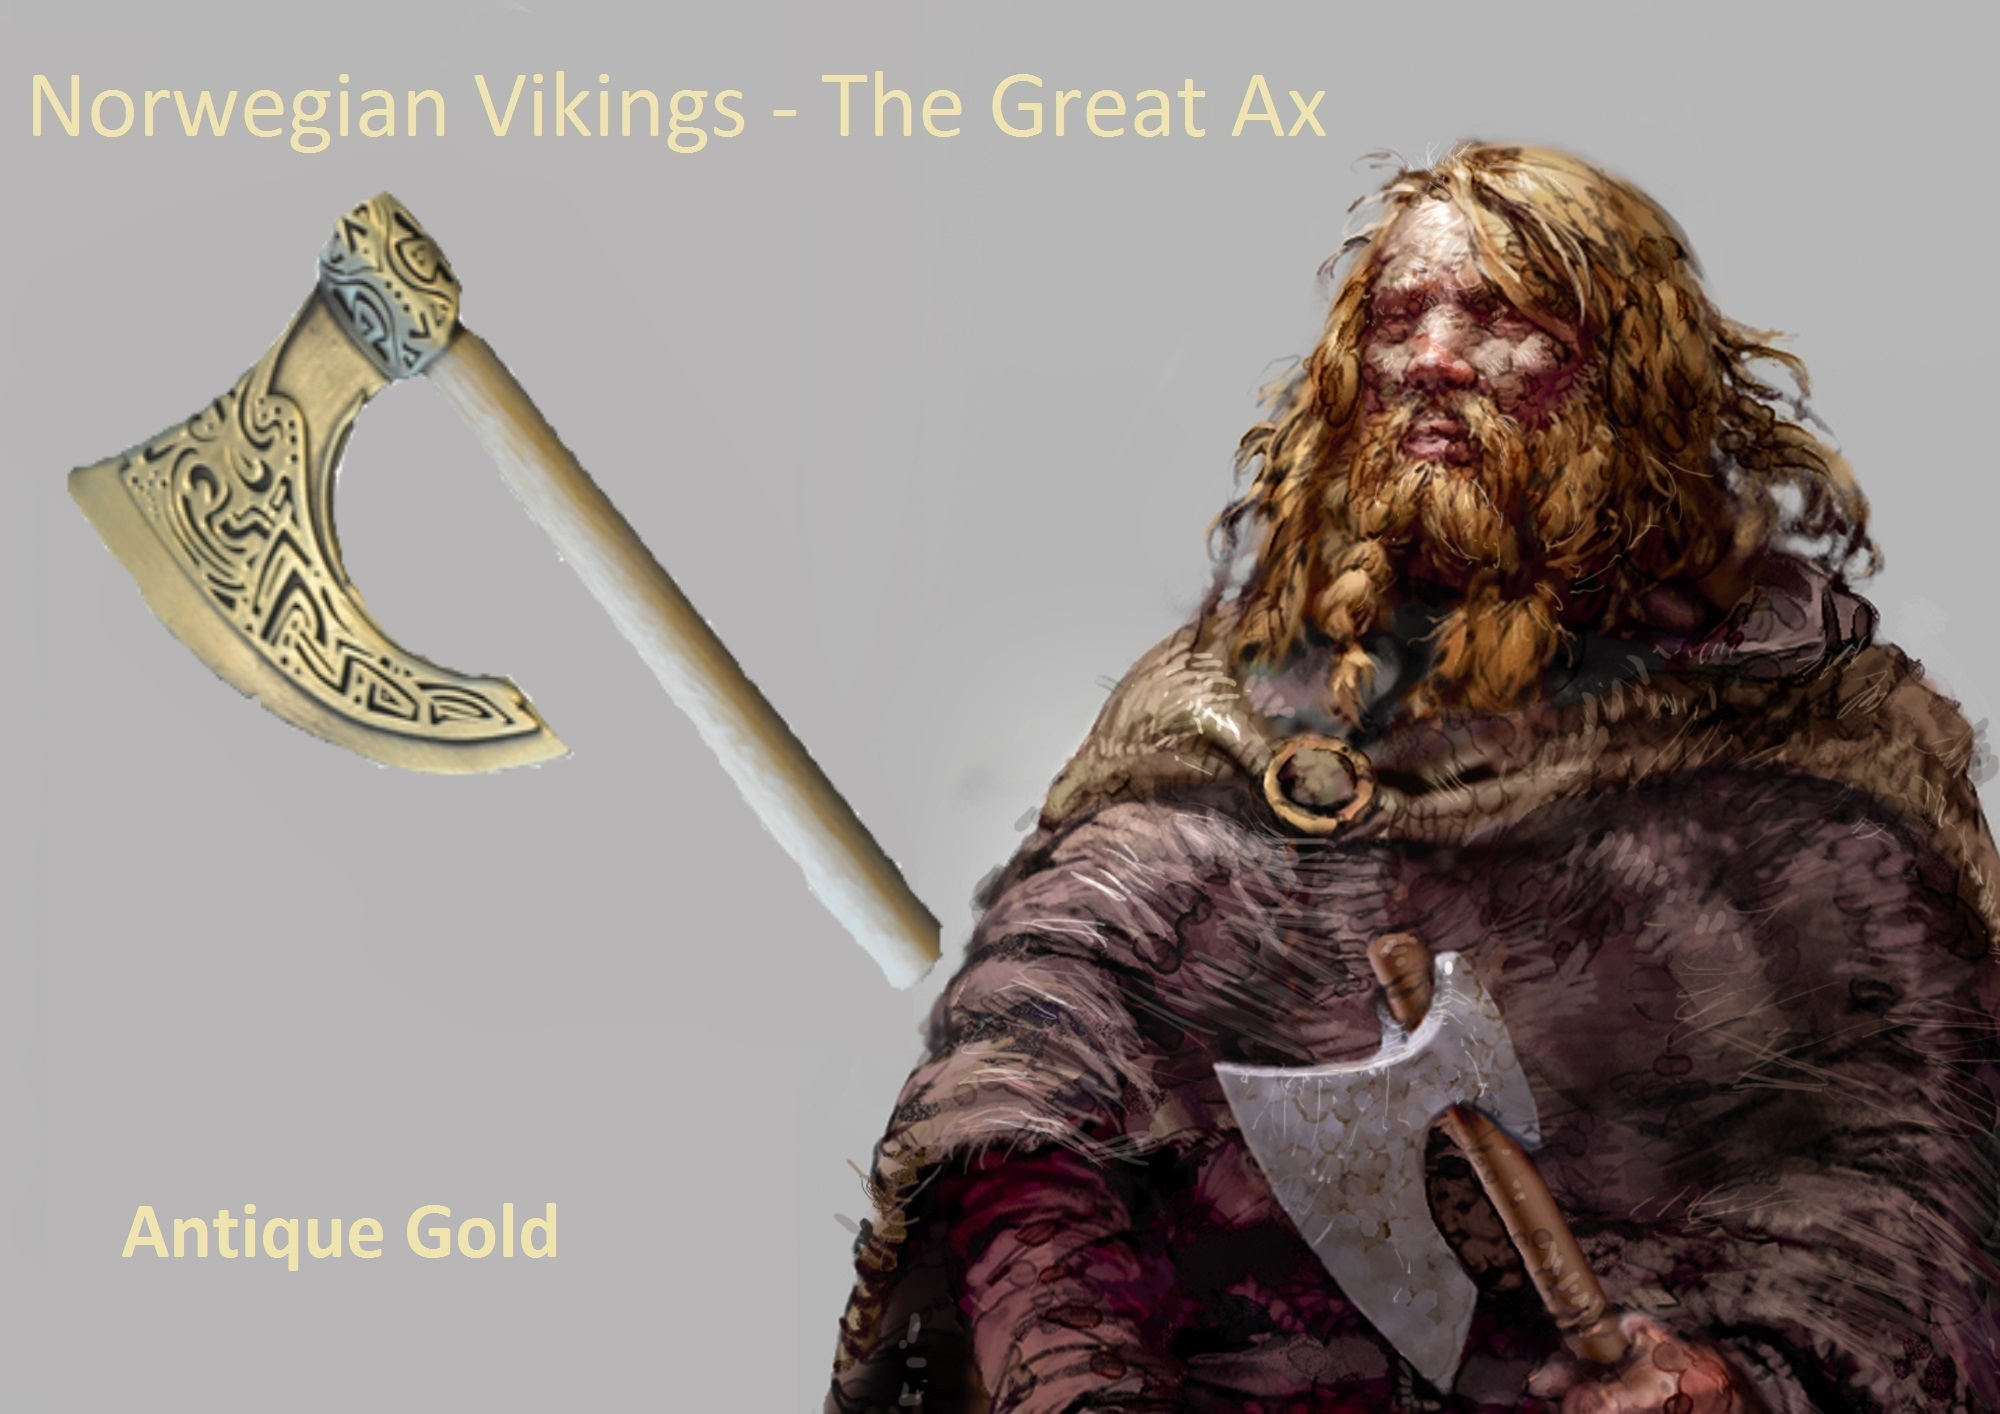 The Great Ax - Antique Gold.jpg